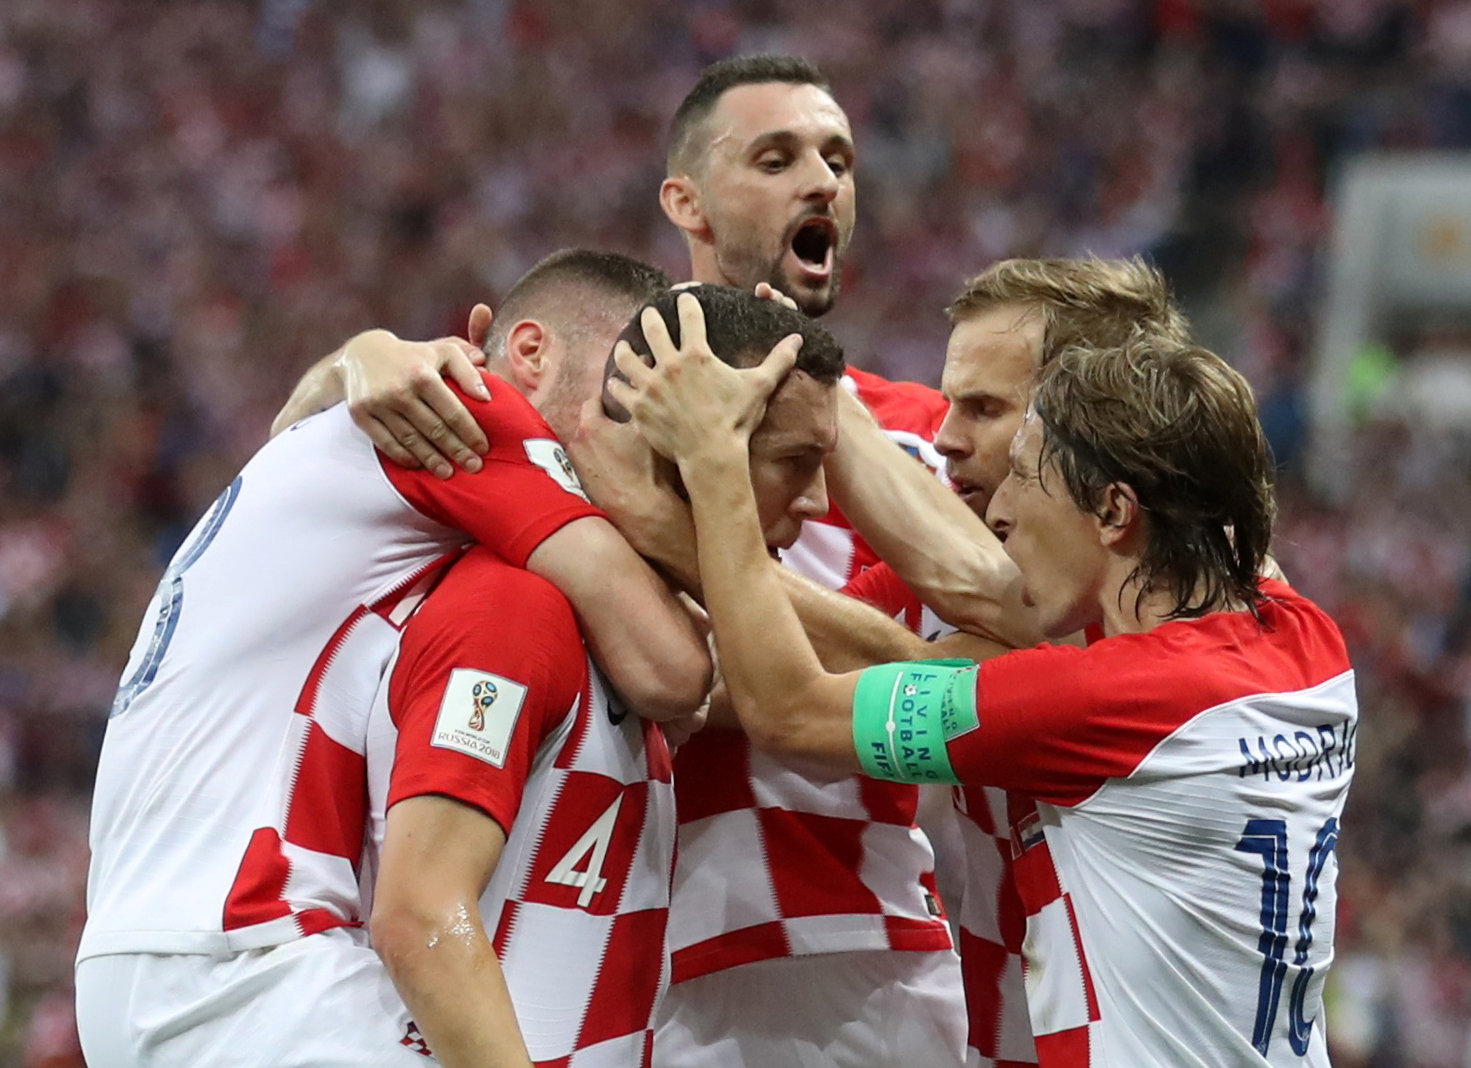 2018-07-15T153641Z_246676276_RC14243D2220_RTRMADP_3_SOCCER-WORLDCUP-FINAL